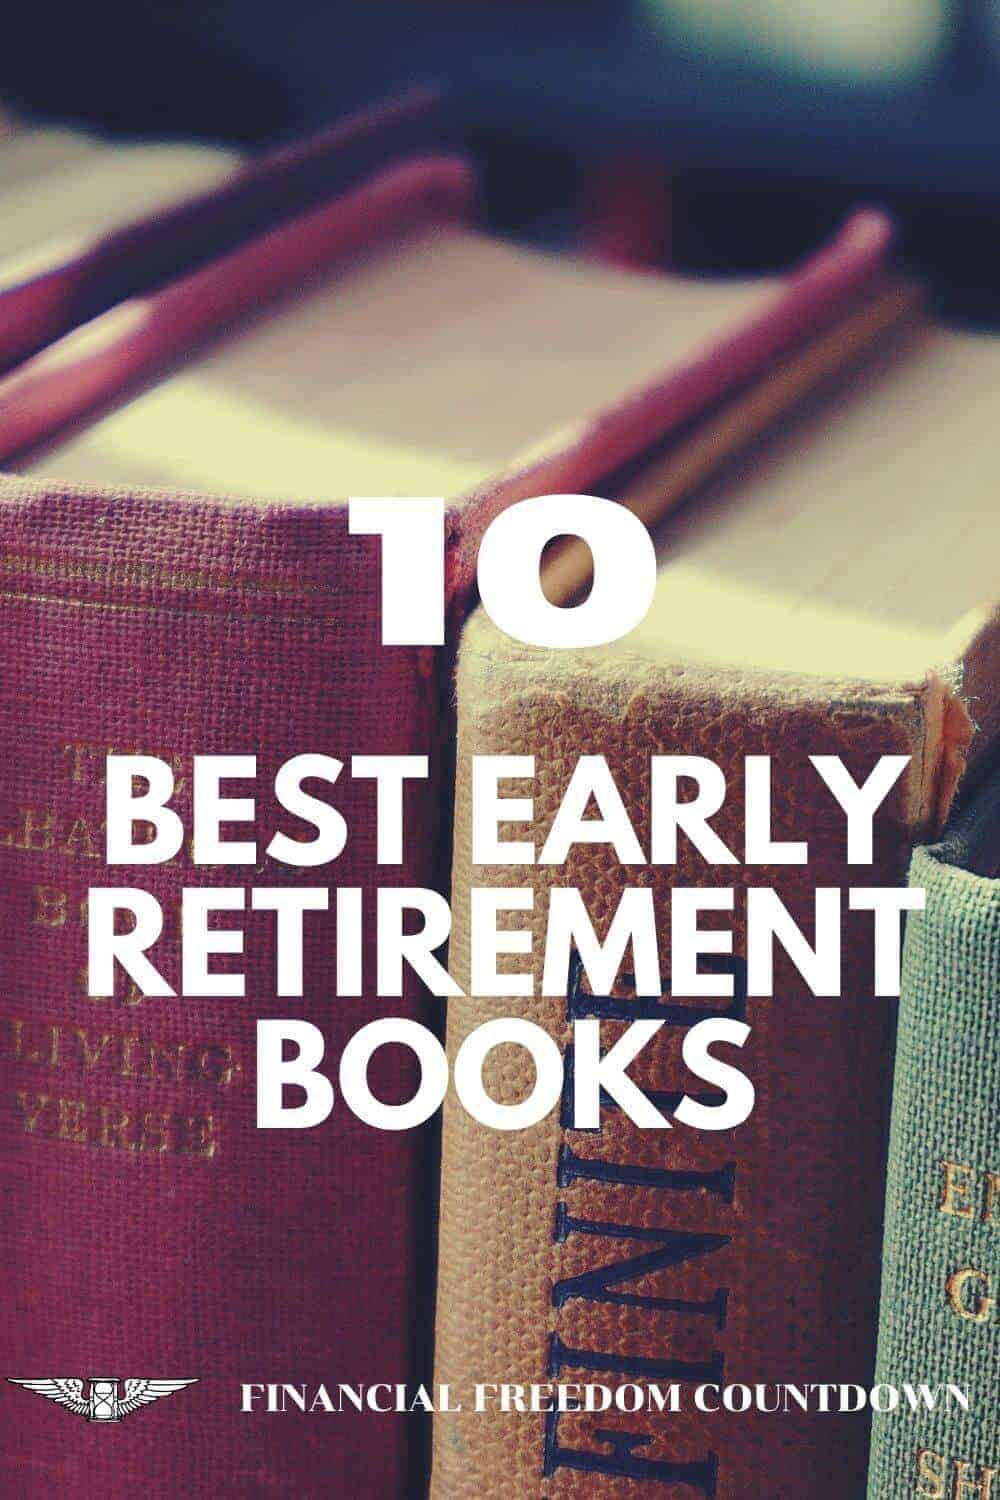 Early retirement books provide a great way to introduce the concept to your loved ones. Check my list of the best early retirement books with a brief synopsis of each.